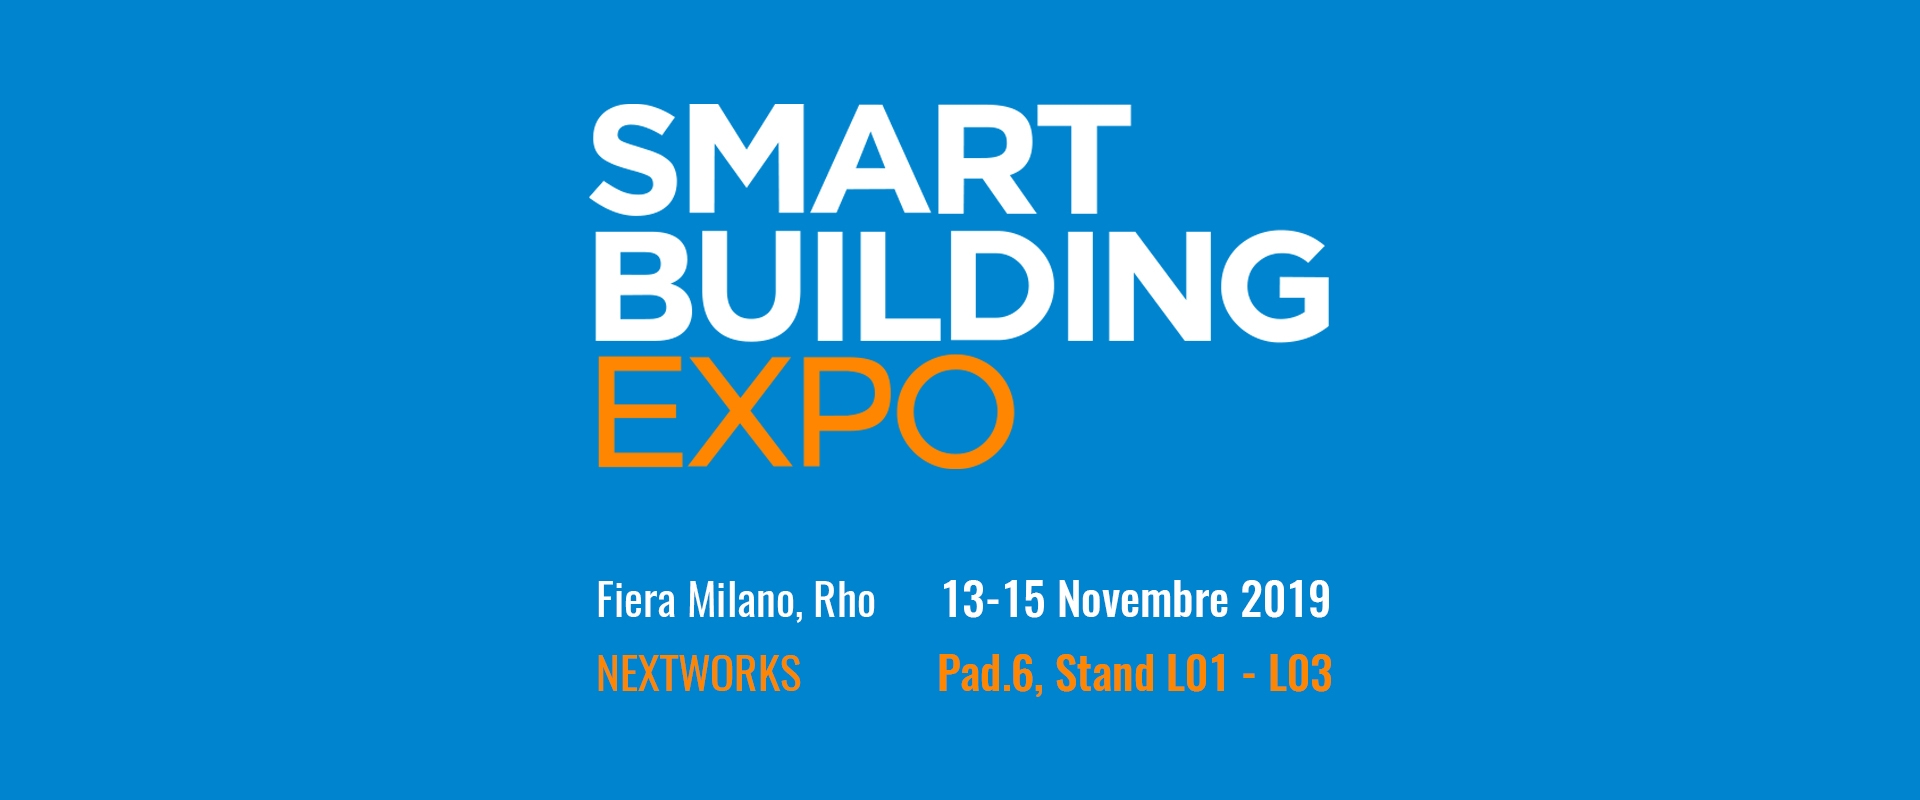 Smart Building Expo 2019 – Milano 13-15 novembre